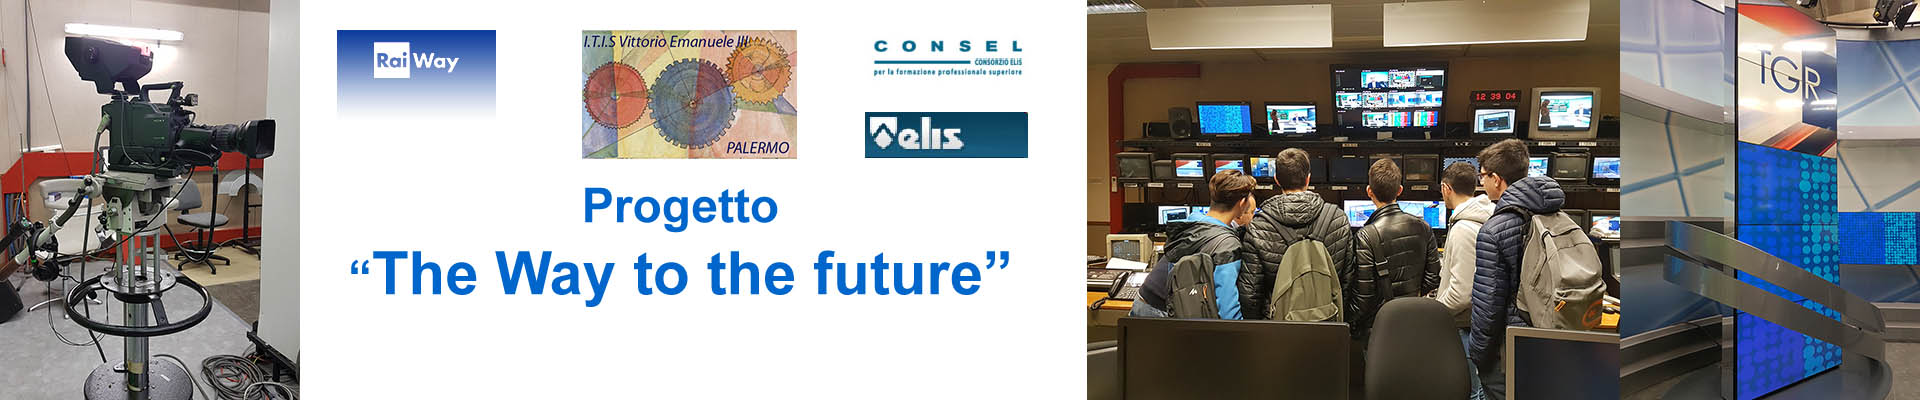 Progetto The Way to the future